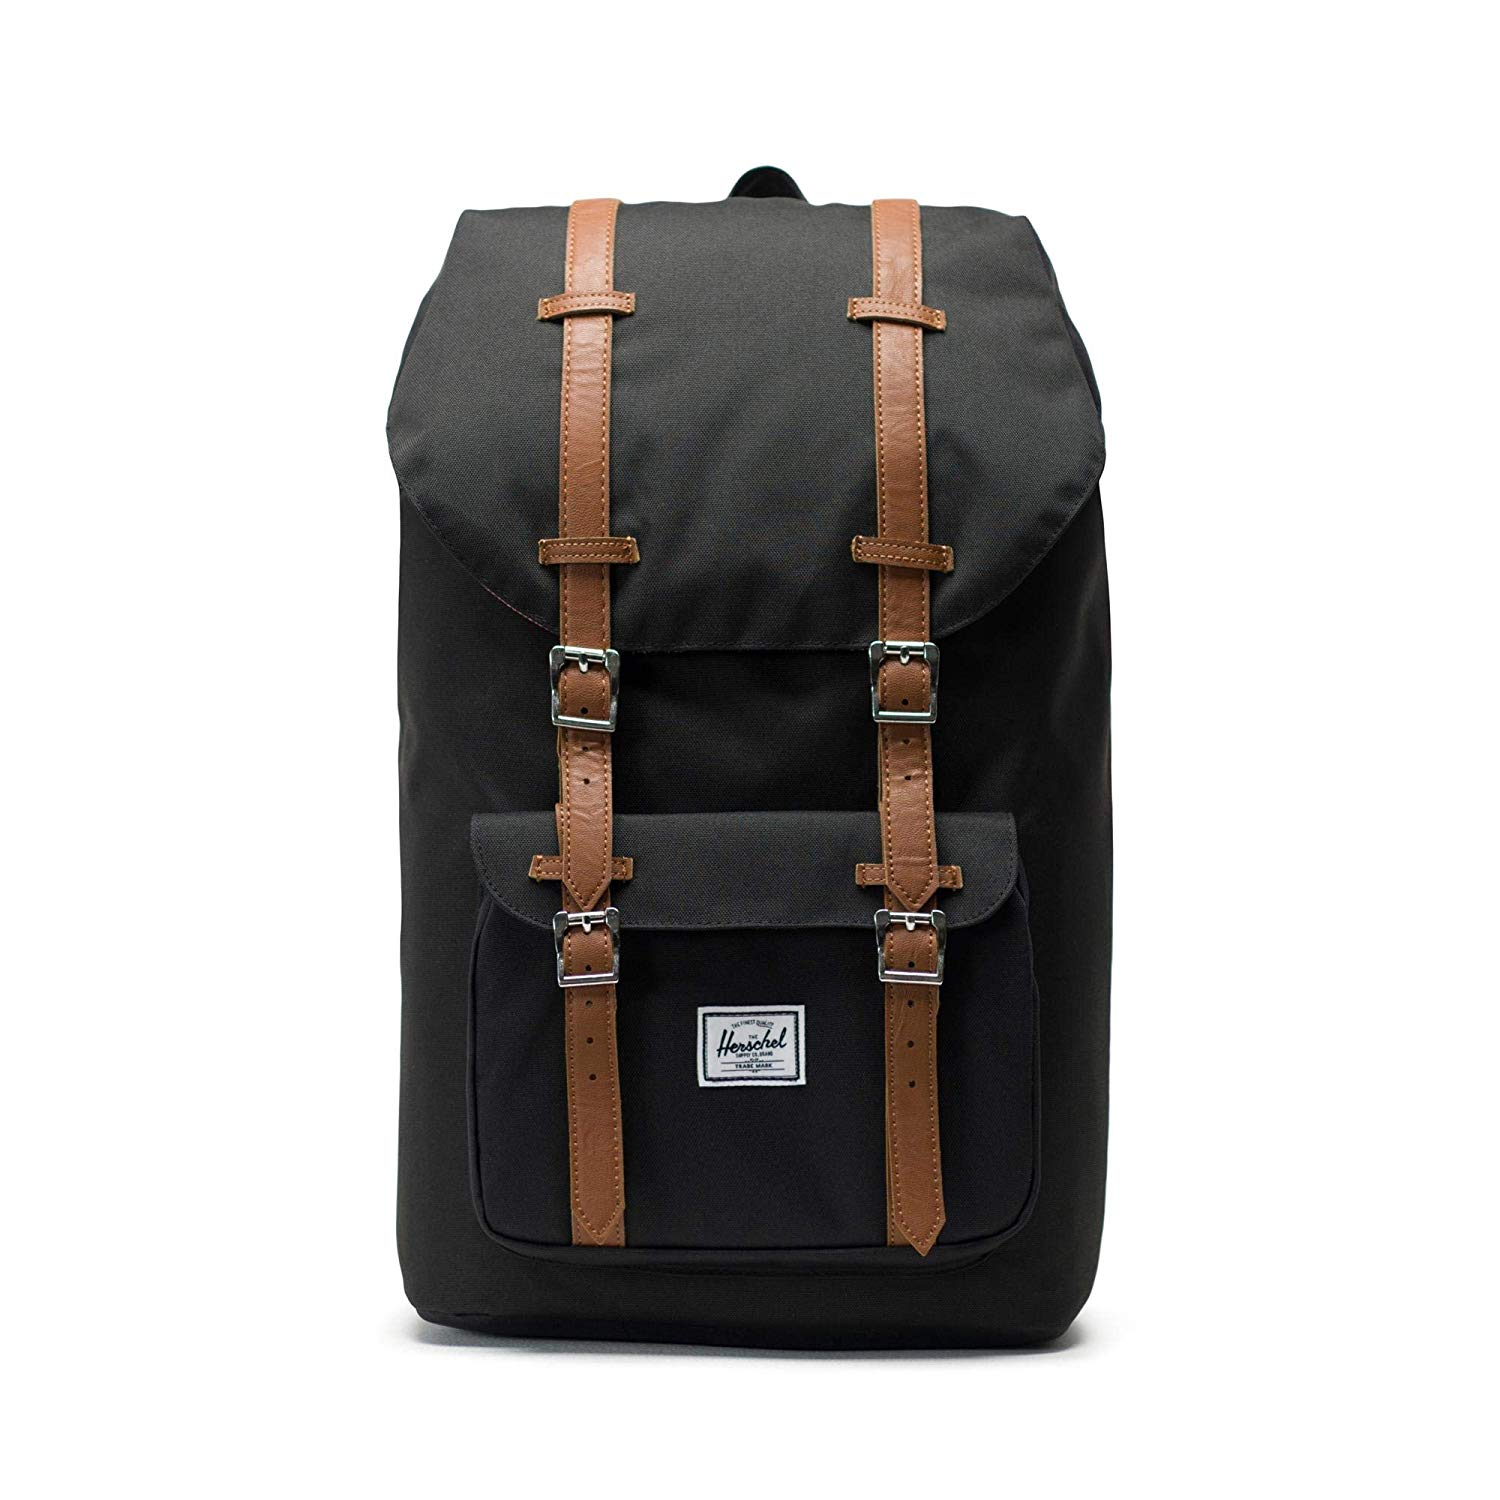 the little America Backpack makes a great professional bag if you need to carry a laptop